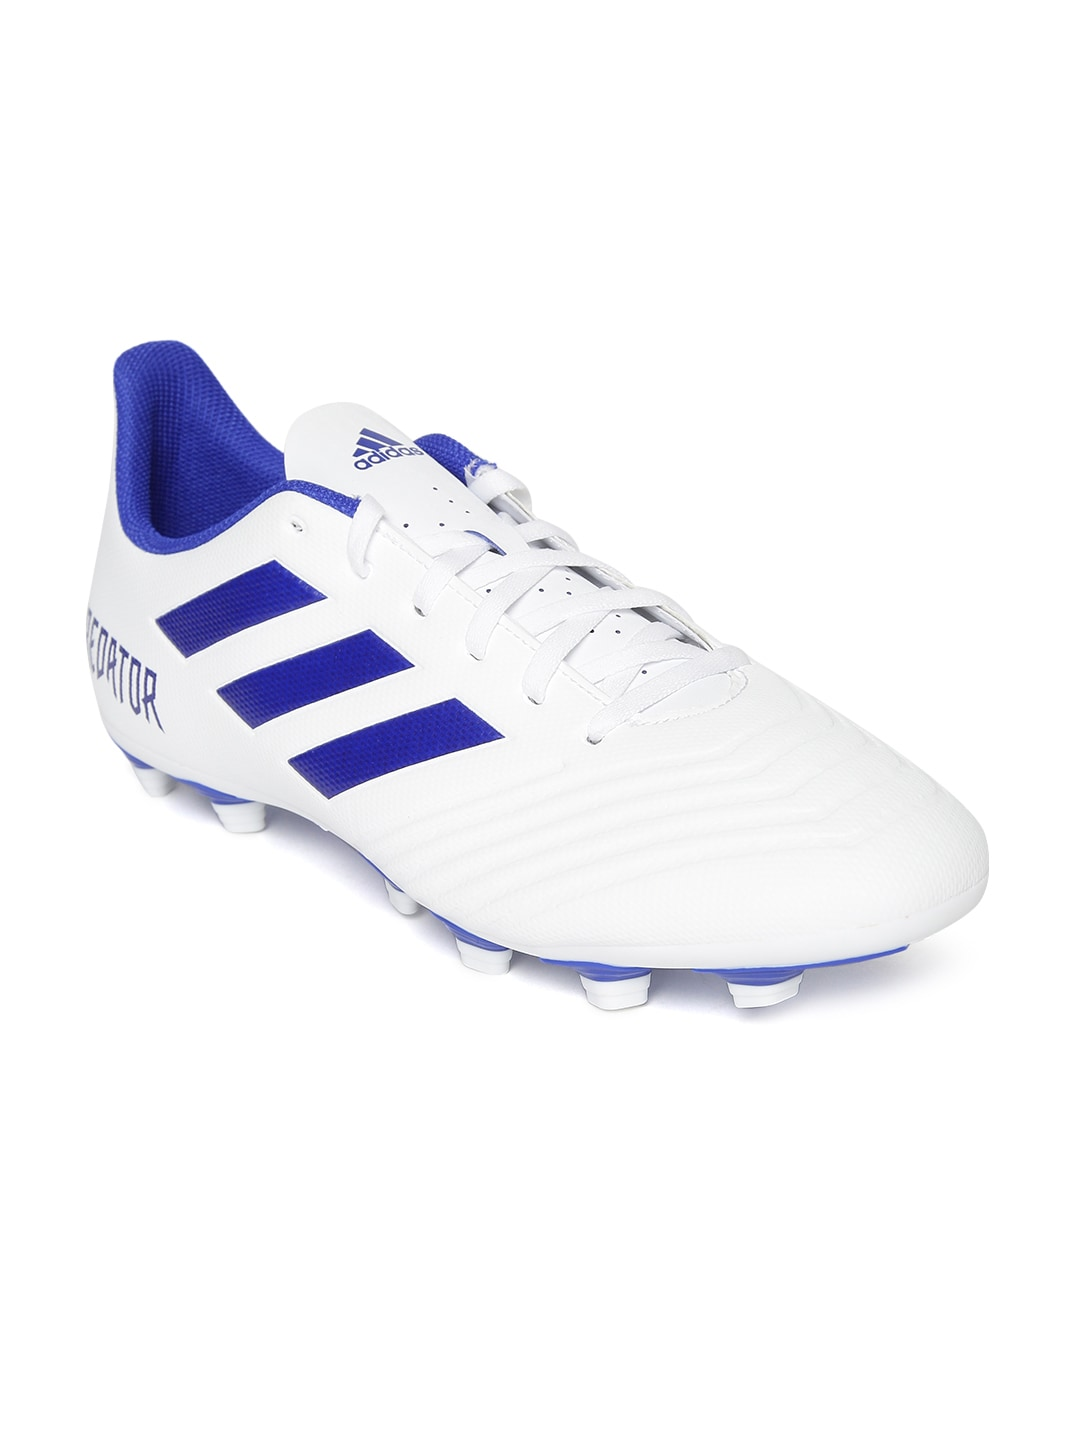 d0512139157 Adidas Football Shoes - Buy Adidas Football Shoes for Men Online in India